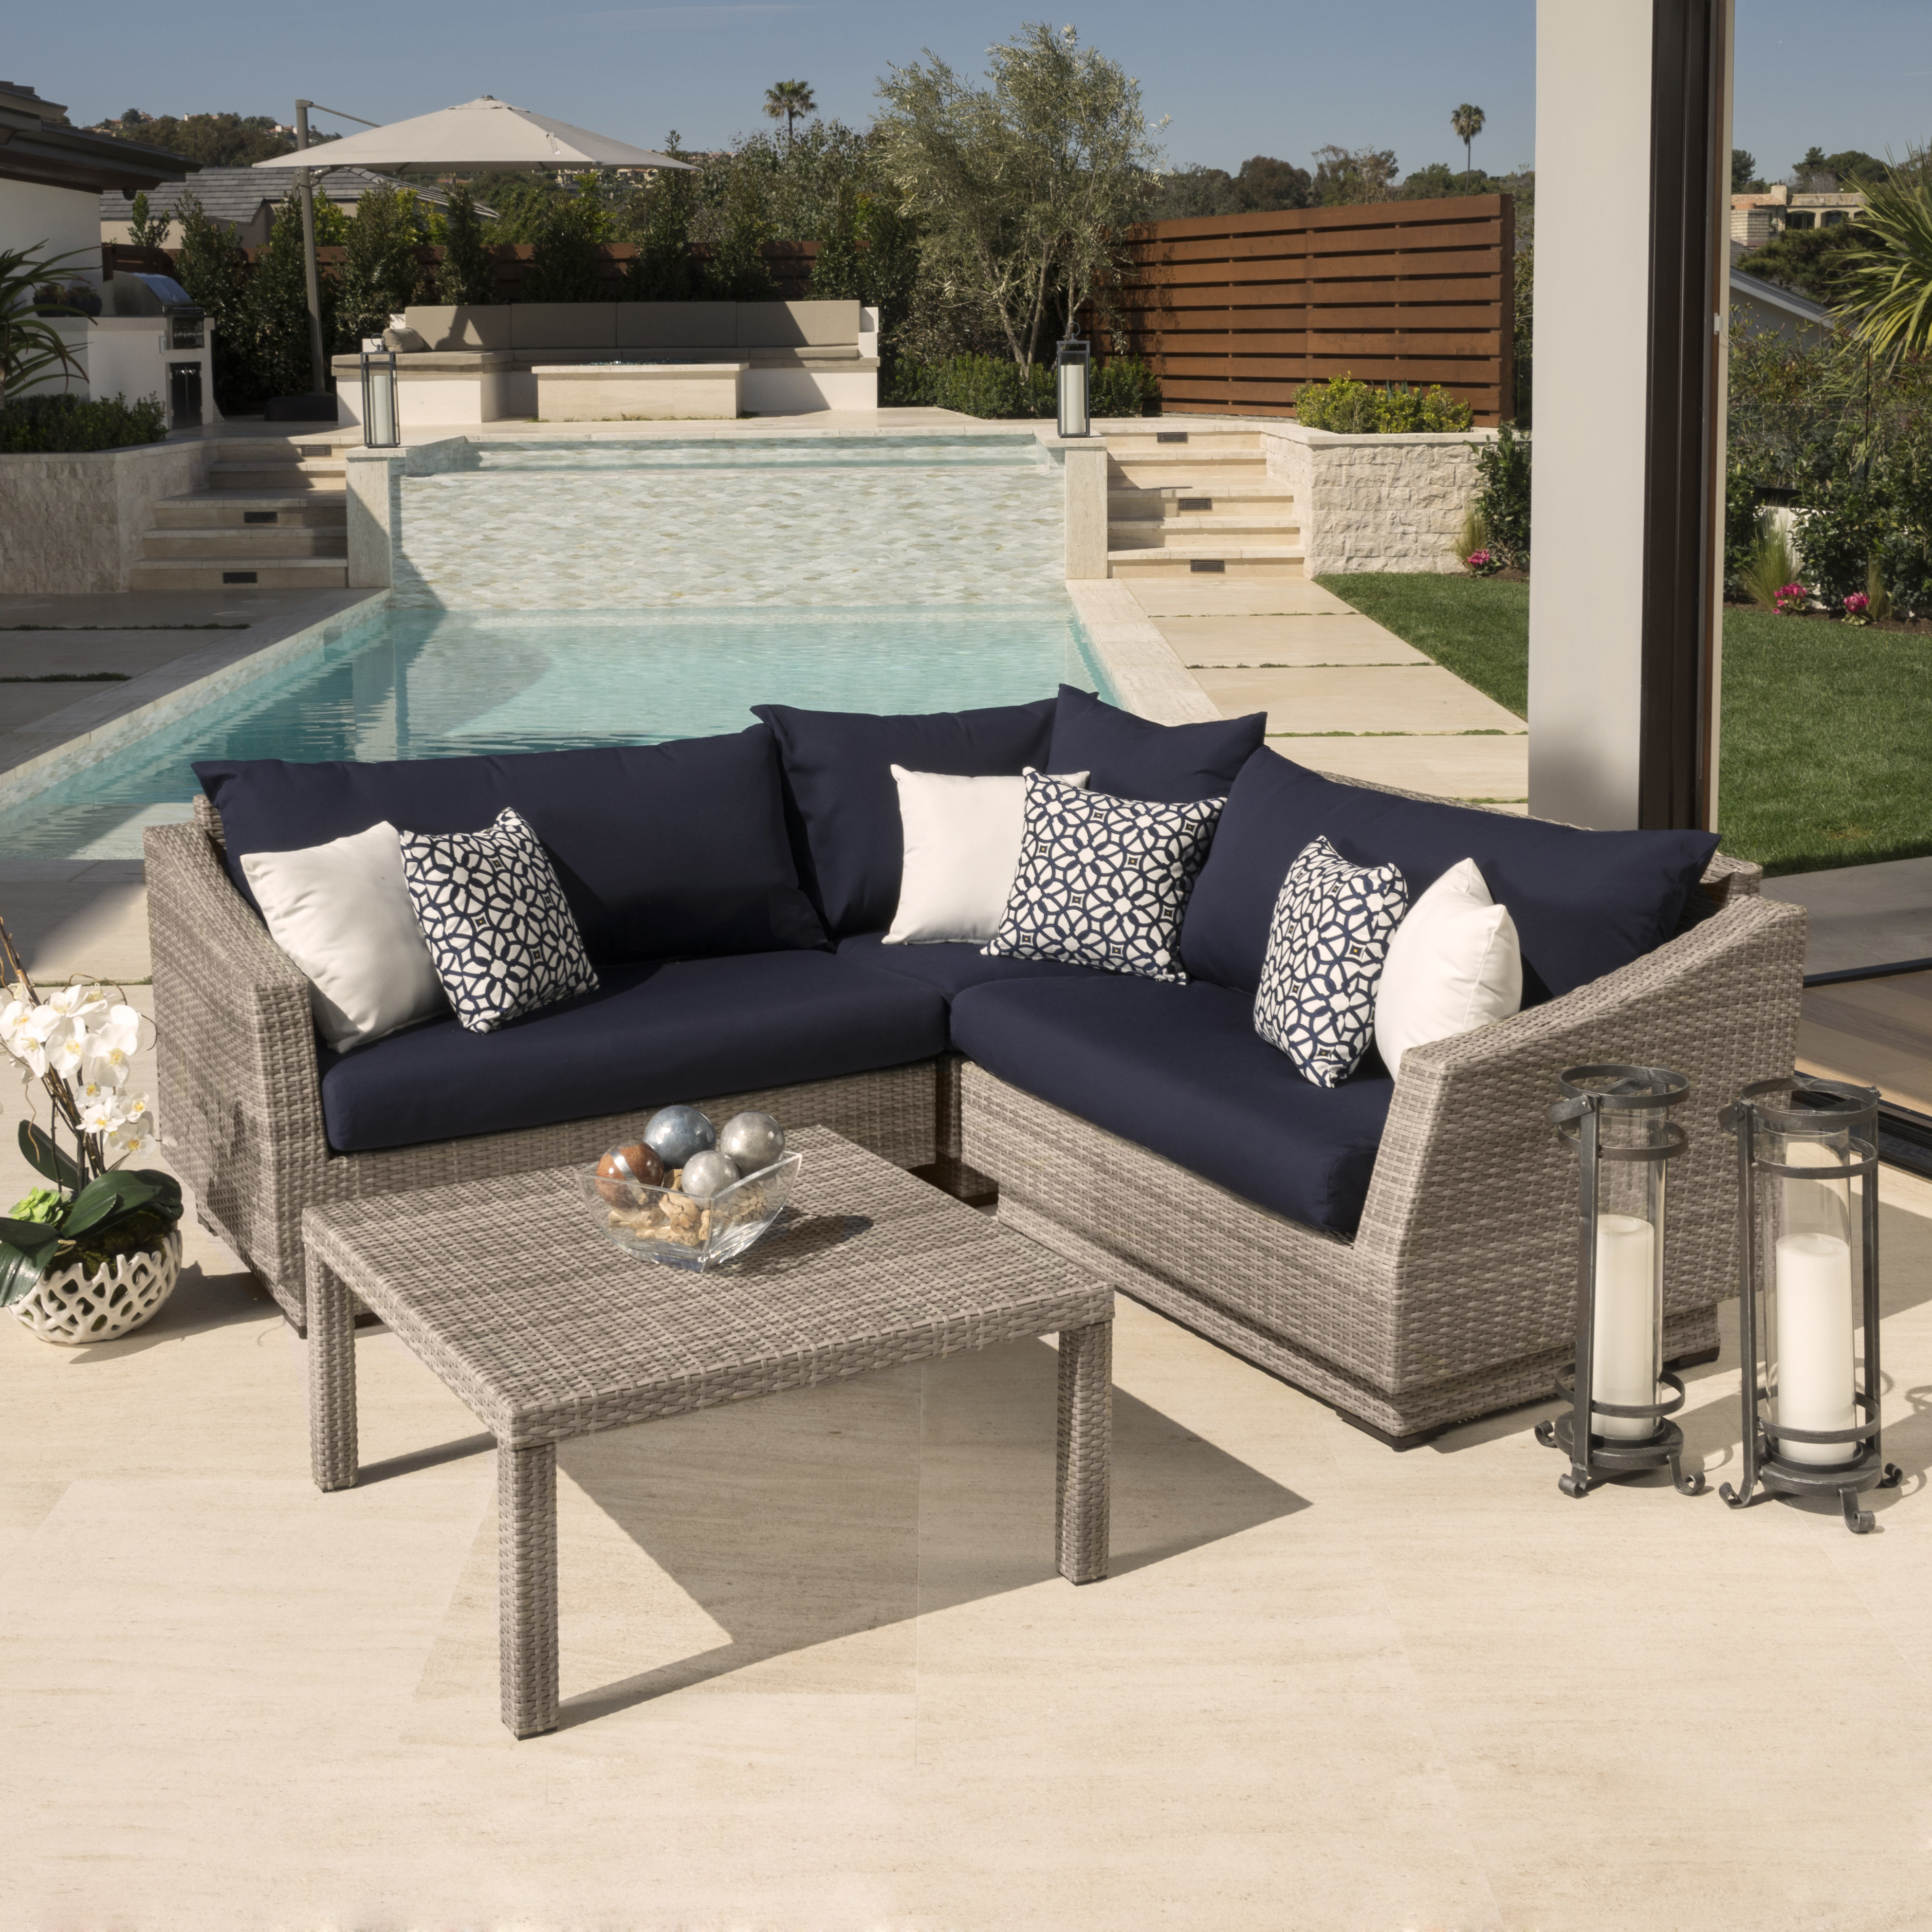 Castelli 4 Piece Rattan Sectional Seating Group With Cushions Pertaining To Well Liked Castelli Loveseats With Cushions (View 2 of 20)